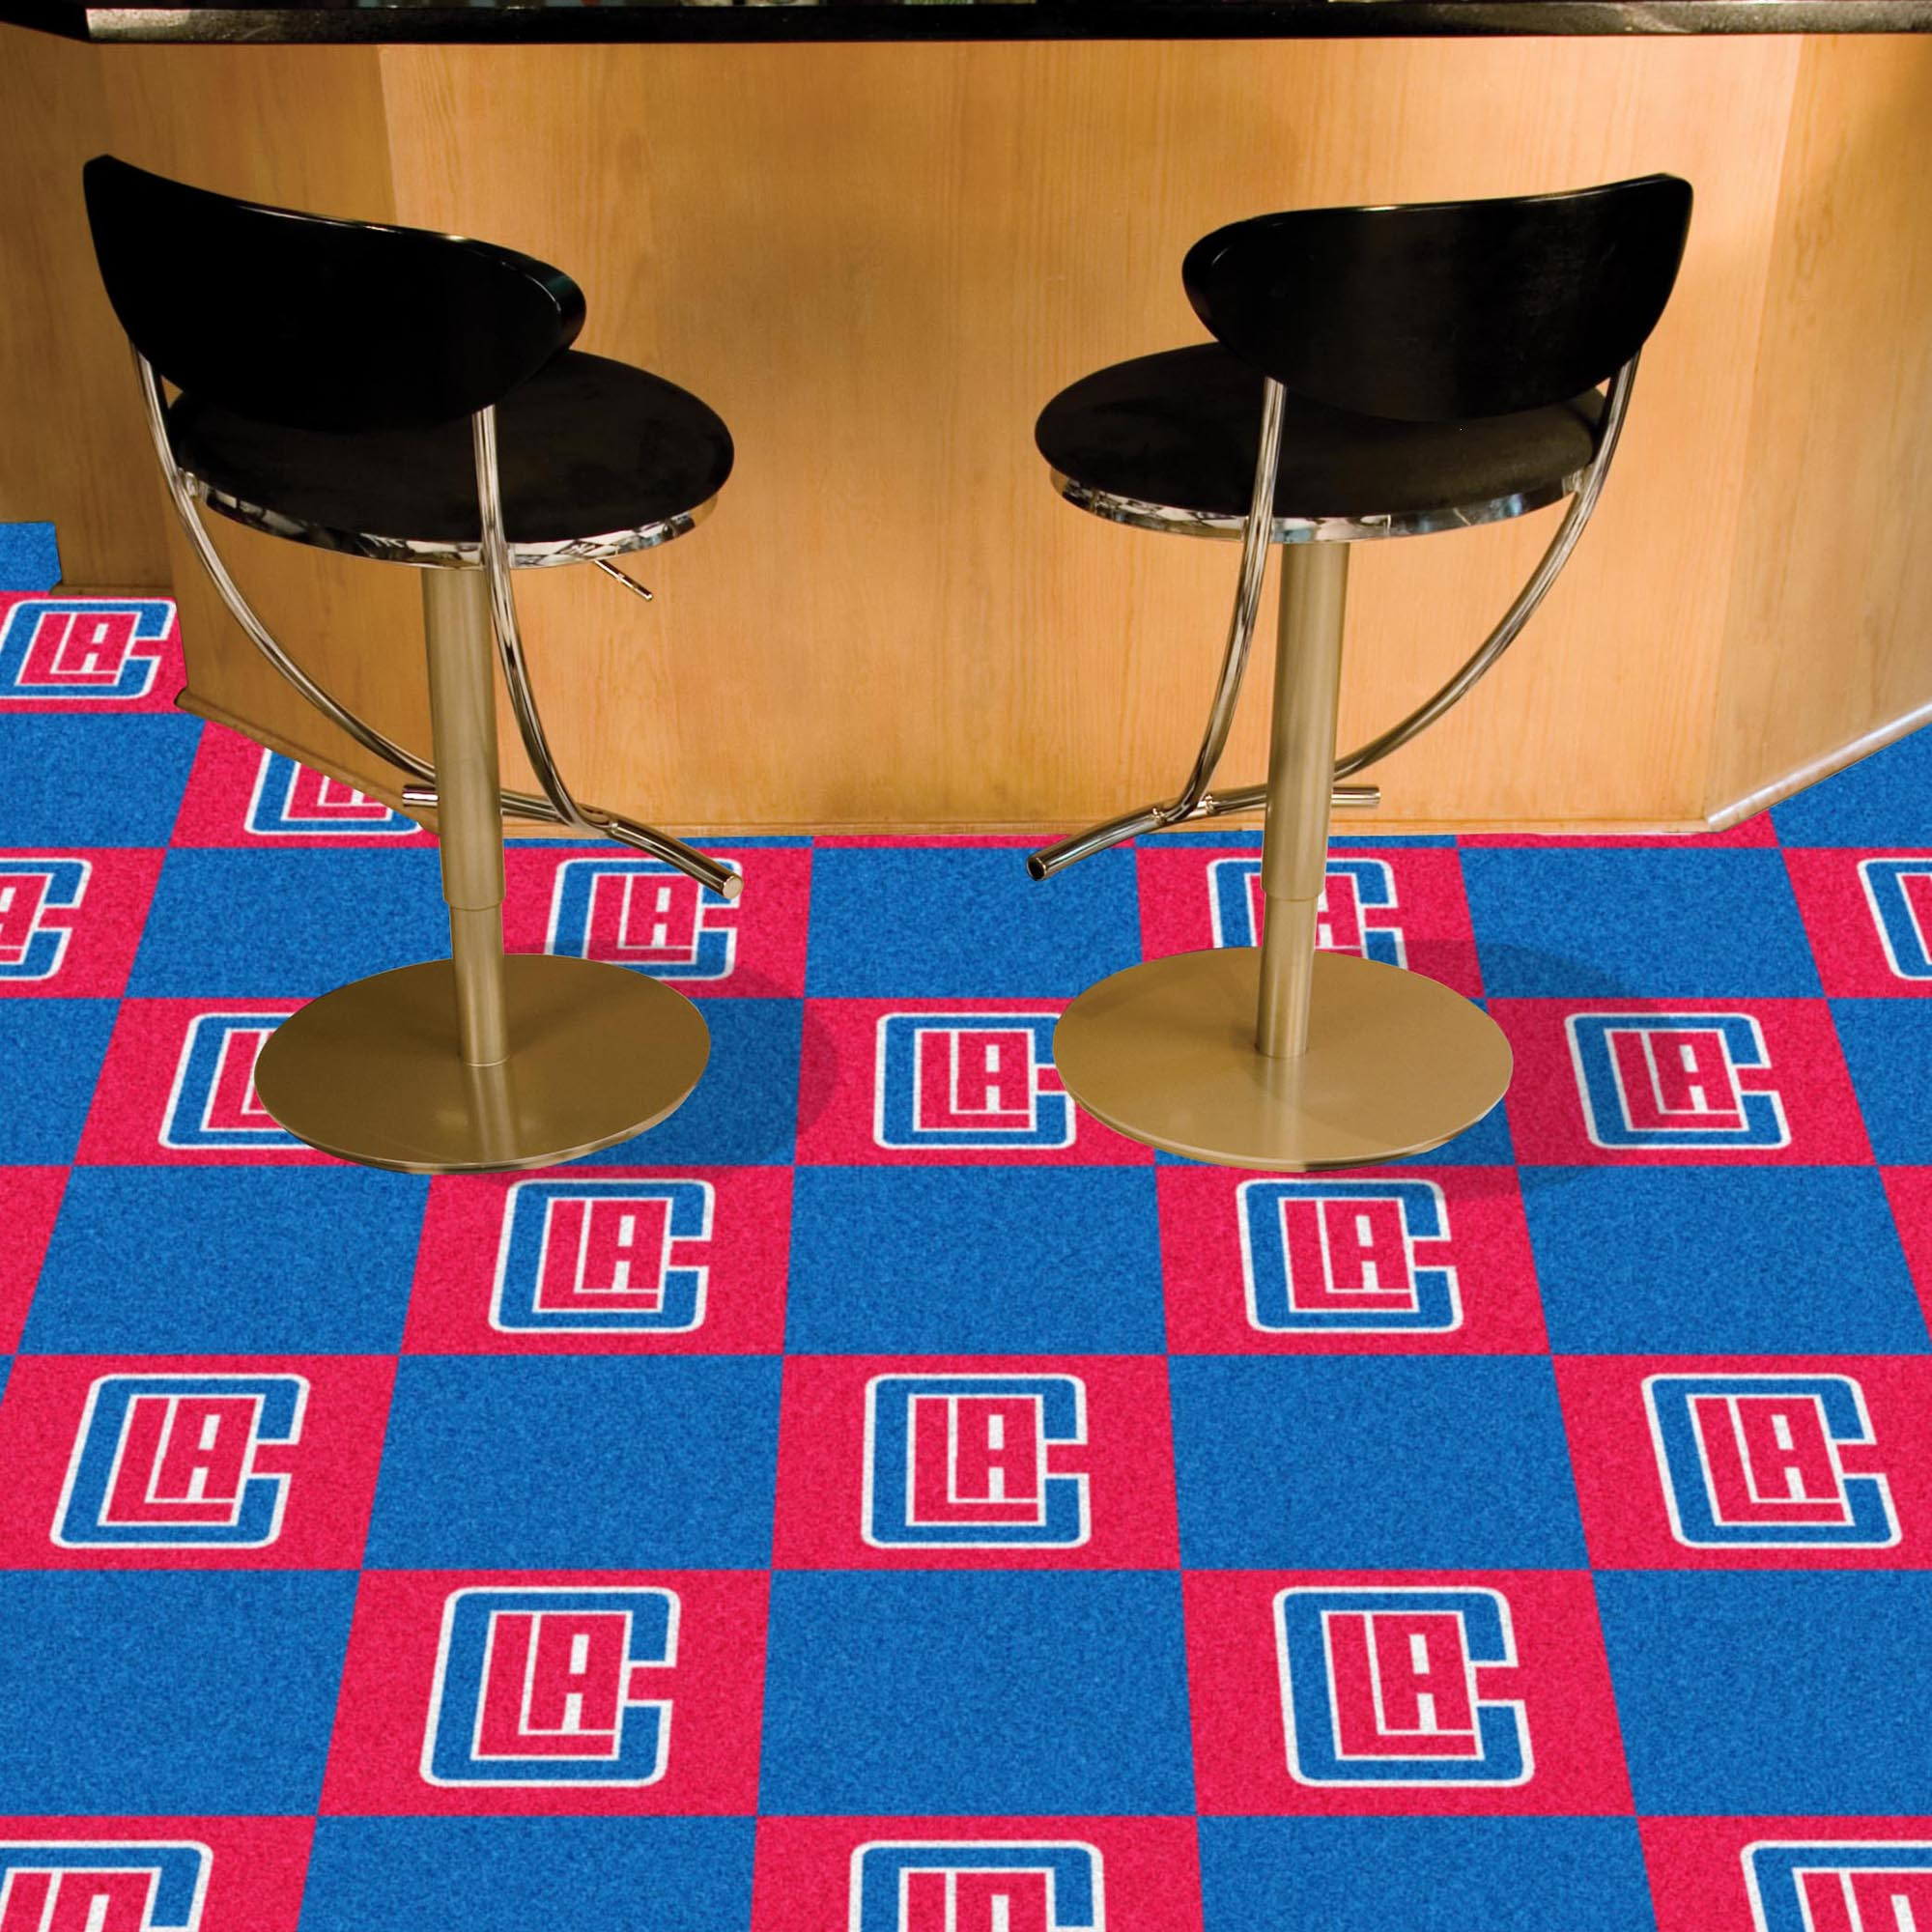 Los Angeles Clippers Carpet Tiles 18x18 in.